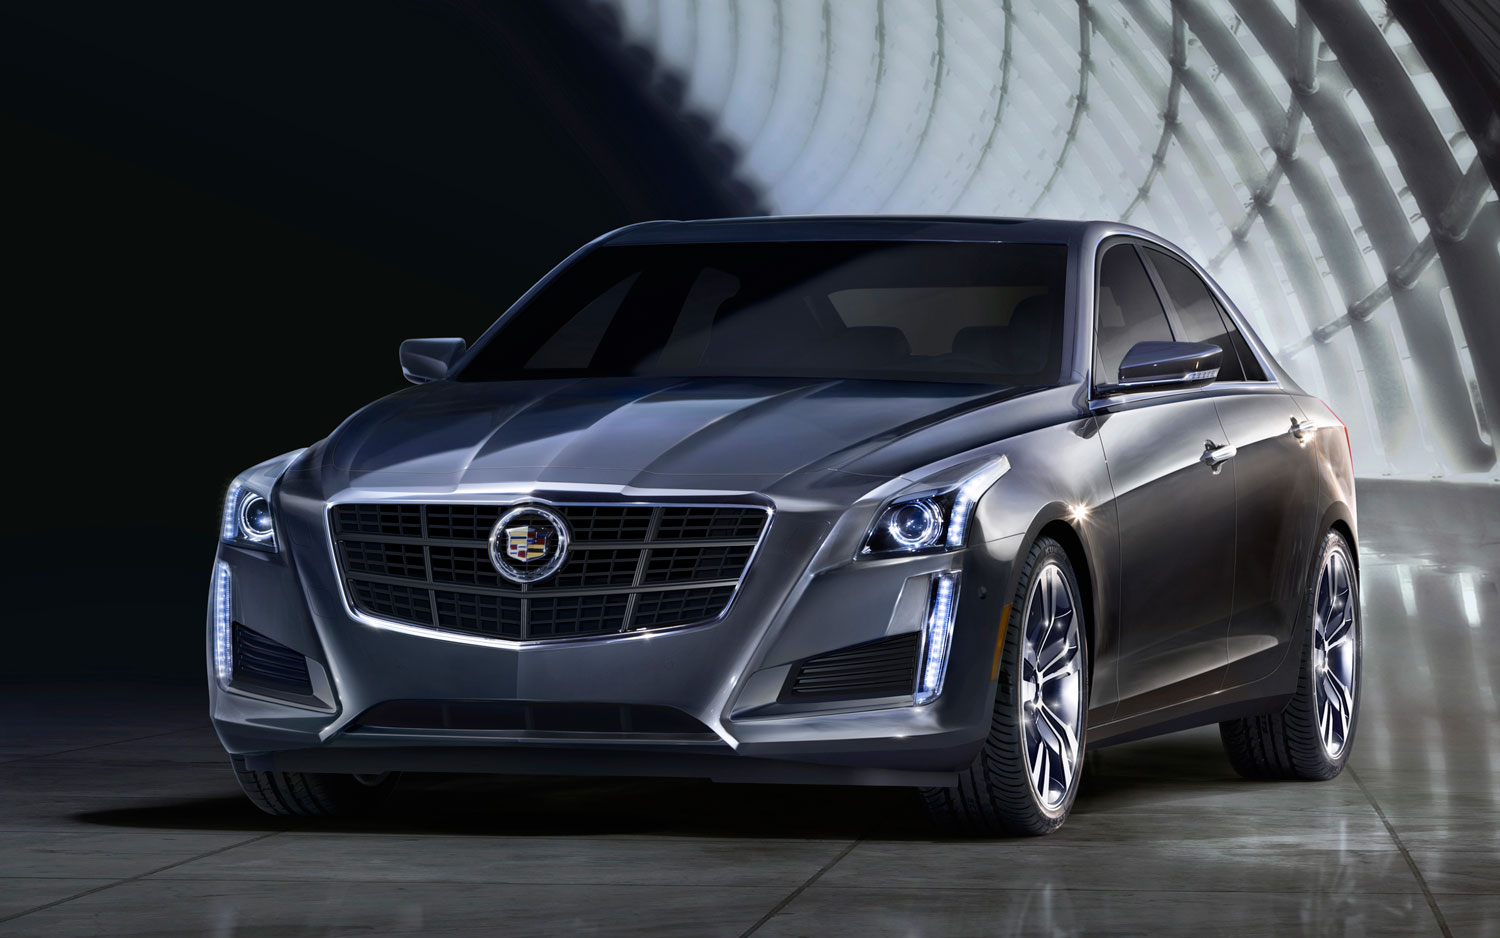 First Look 2014 Cadillac Cts New Cars Reviews